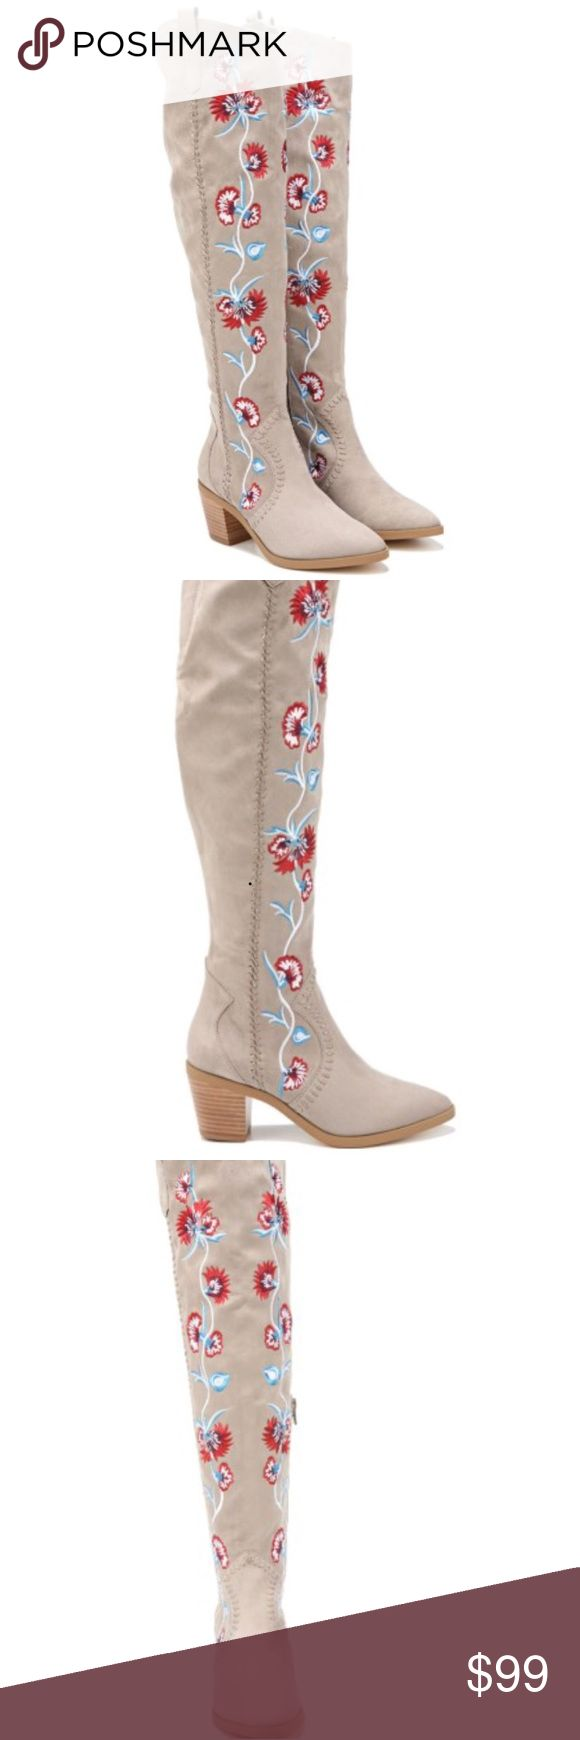 🔥NEW!🔥Carlos Santana Alexia Embroidered Boots These are just fabulous! I wear a true 10 and tried them on, and are they gorgeous, and comfortable!!   Fabric upper in a detailed boot style with round toe Inner side zip closure Decorative embroidery Western inspired stitching Twin pull tabs 18 inch shaft height, 15 inch circumference Smooth lining, cushioning insole for all-day comfort Traction outsole, 2 and 1/2 inch stacked heel. Please, no insulting offers, for sale only. No trades…